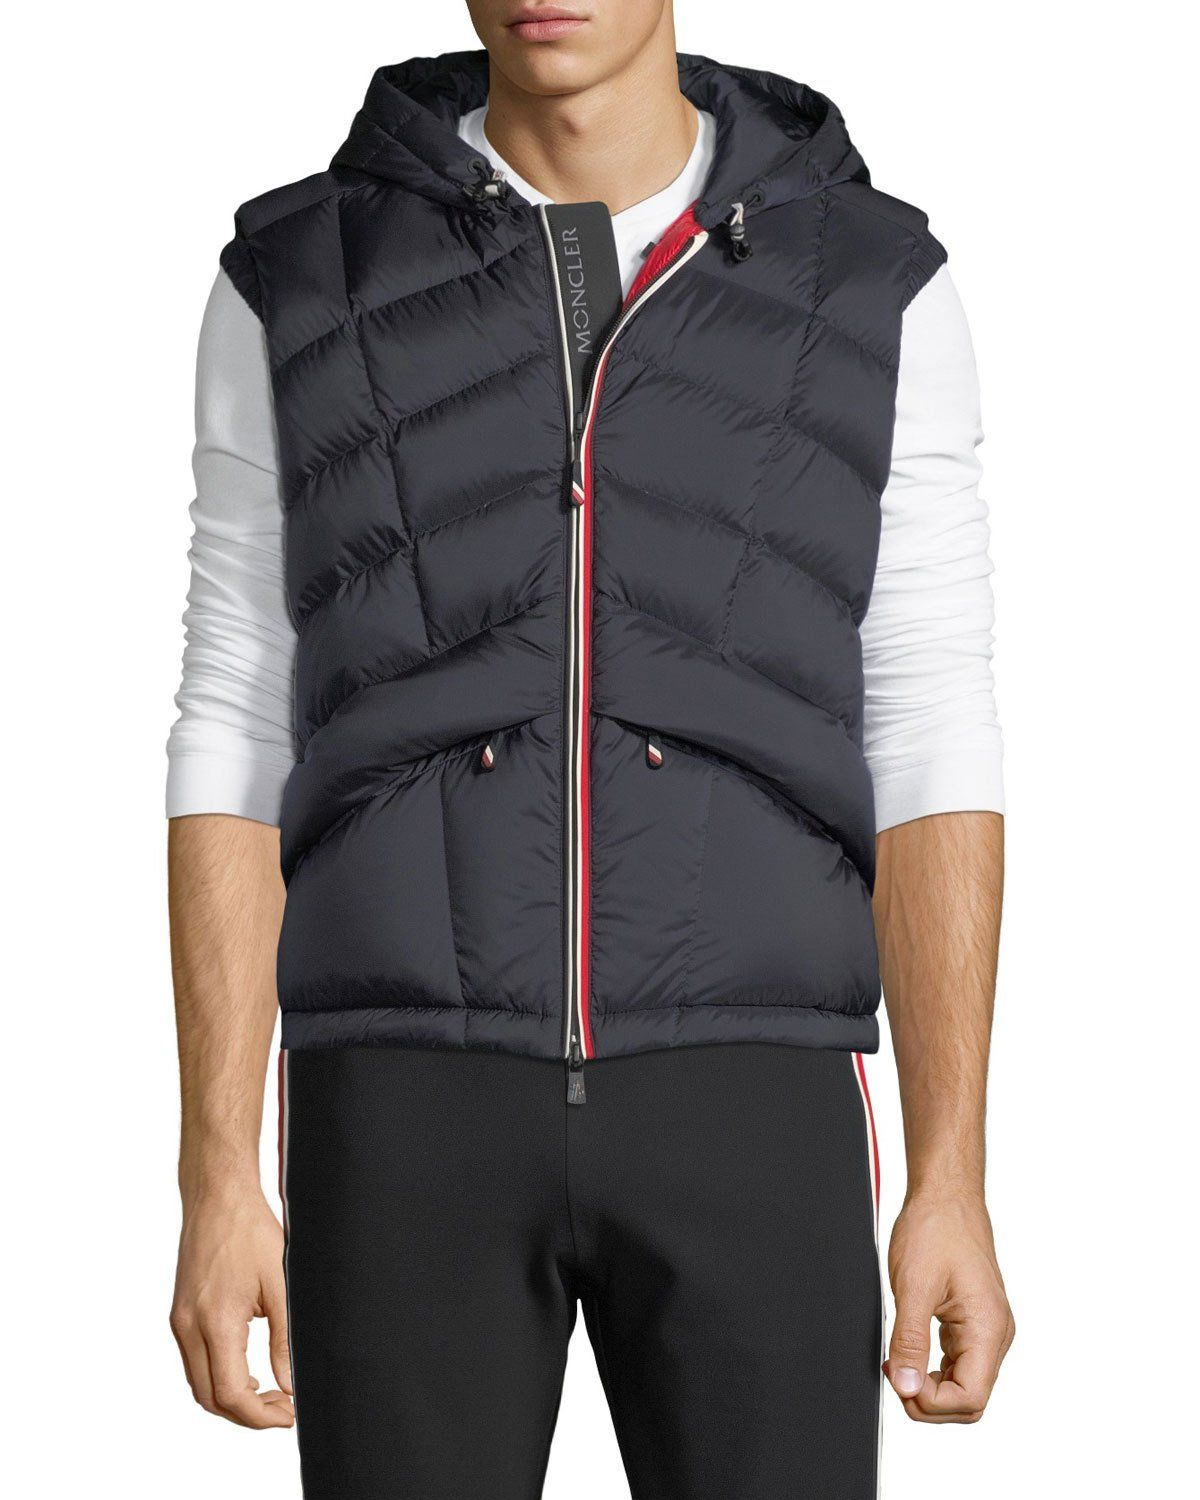 93566bdaa Moncler Men's Rossiniere Puffer Vest in 2019 | Products | Vest ...